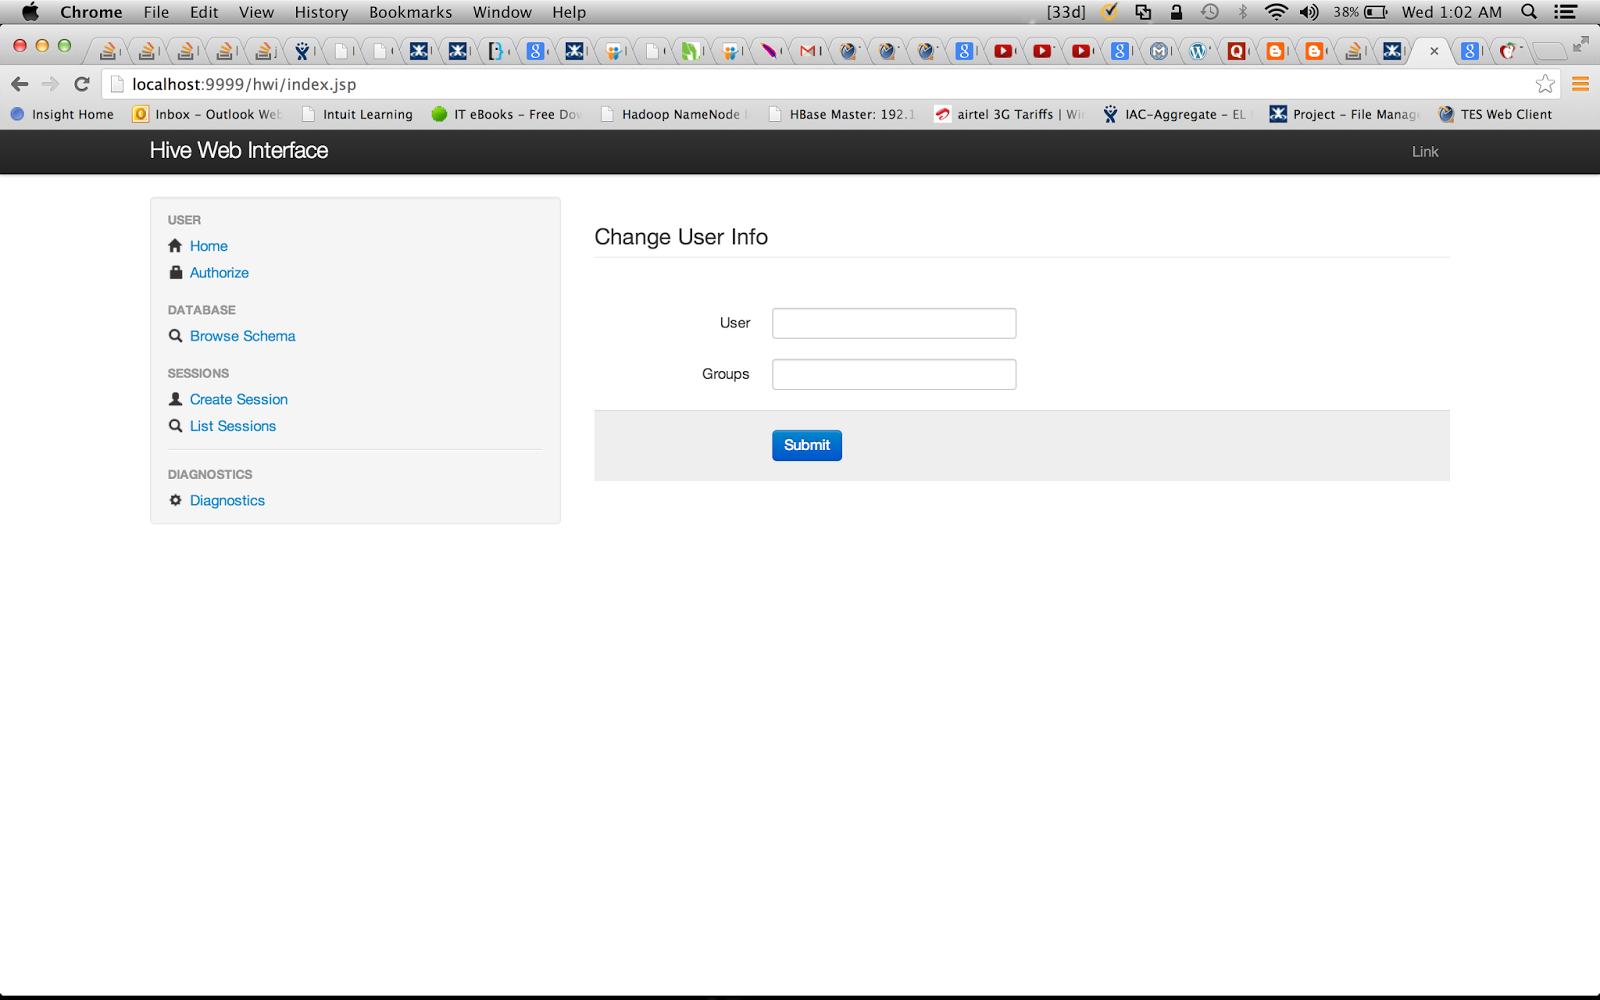 CloudFront: How to run Hive queries through Hive Web Interface